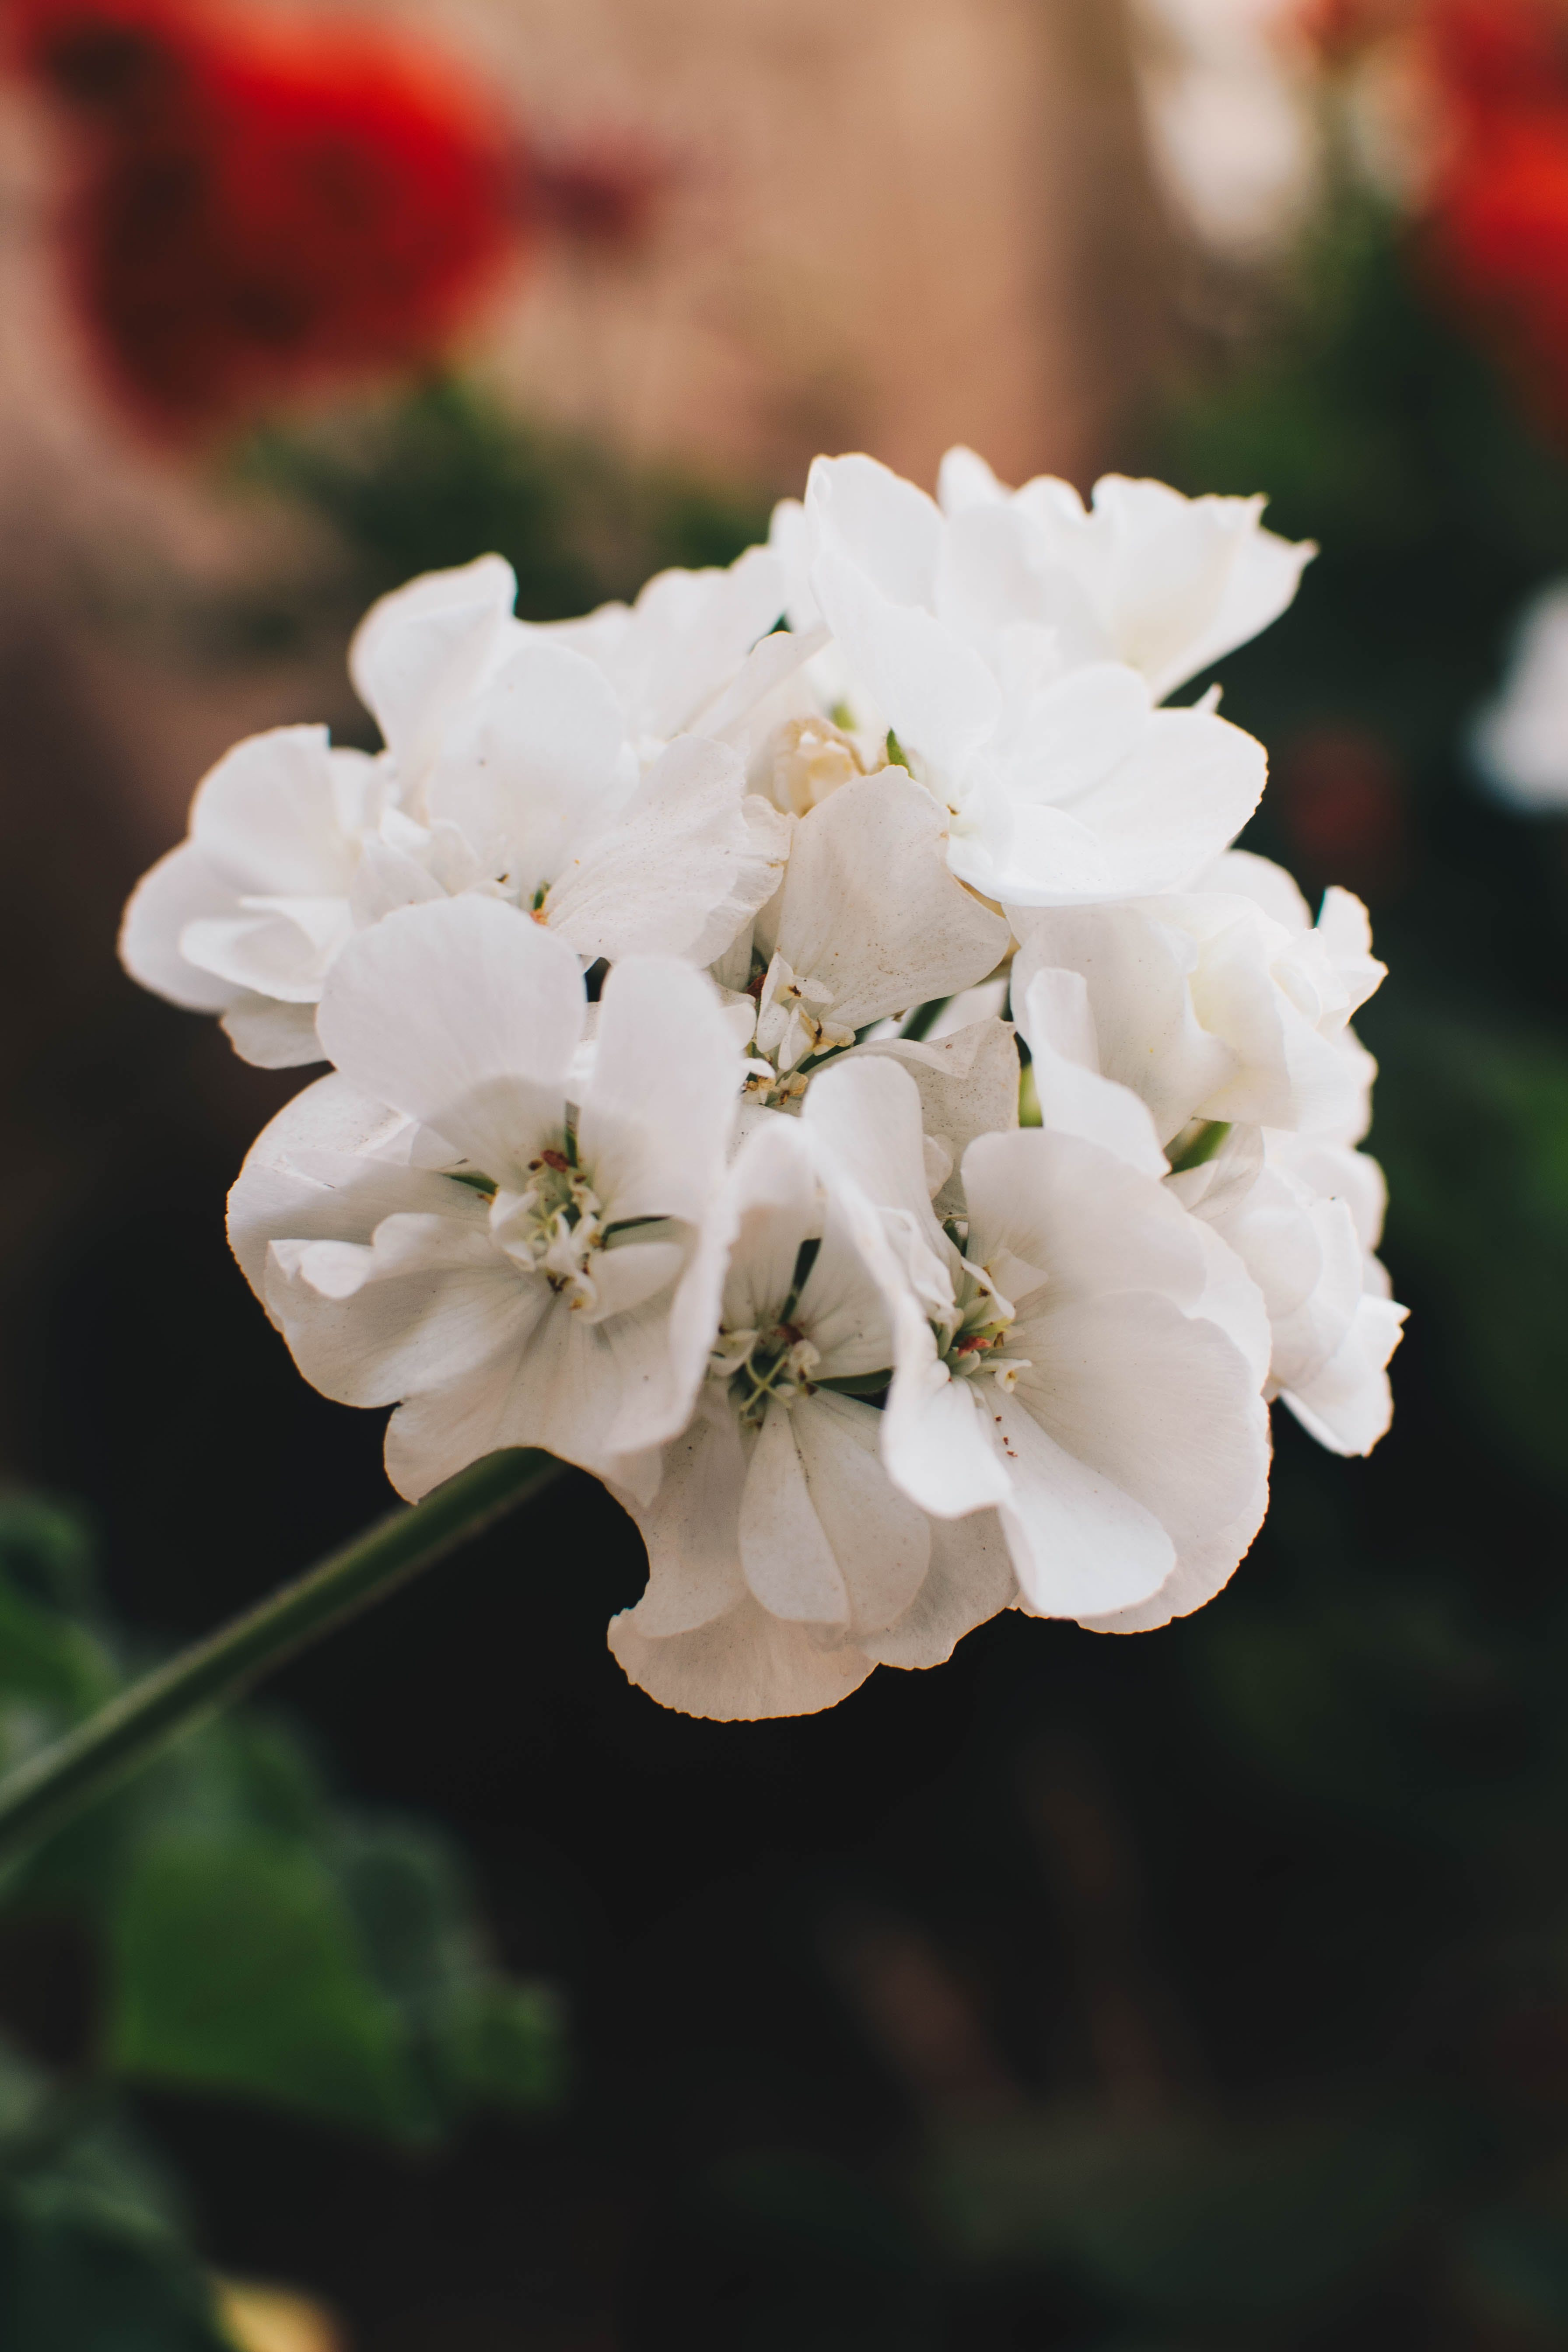 Close-up Photo Of White Geranium Flowers